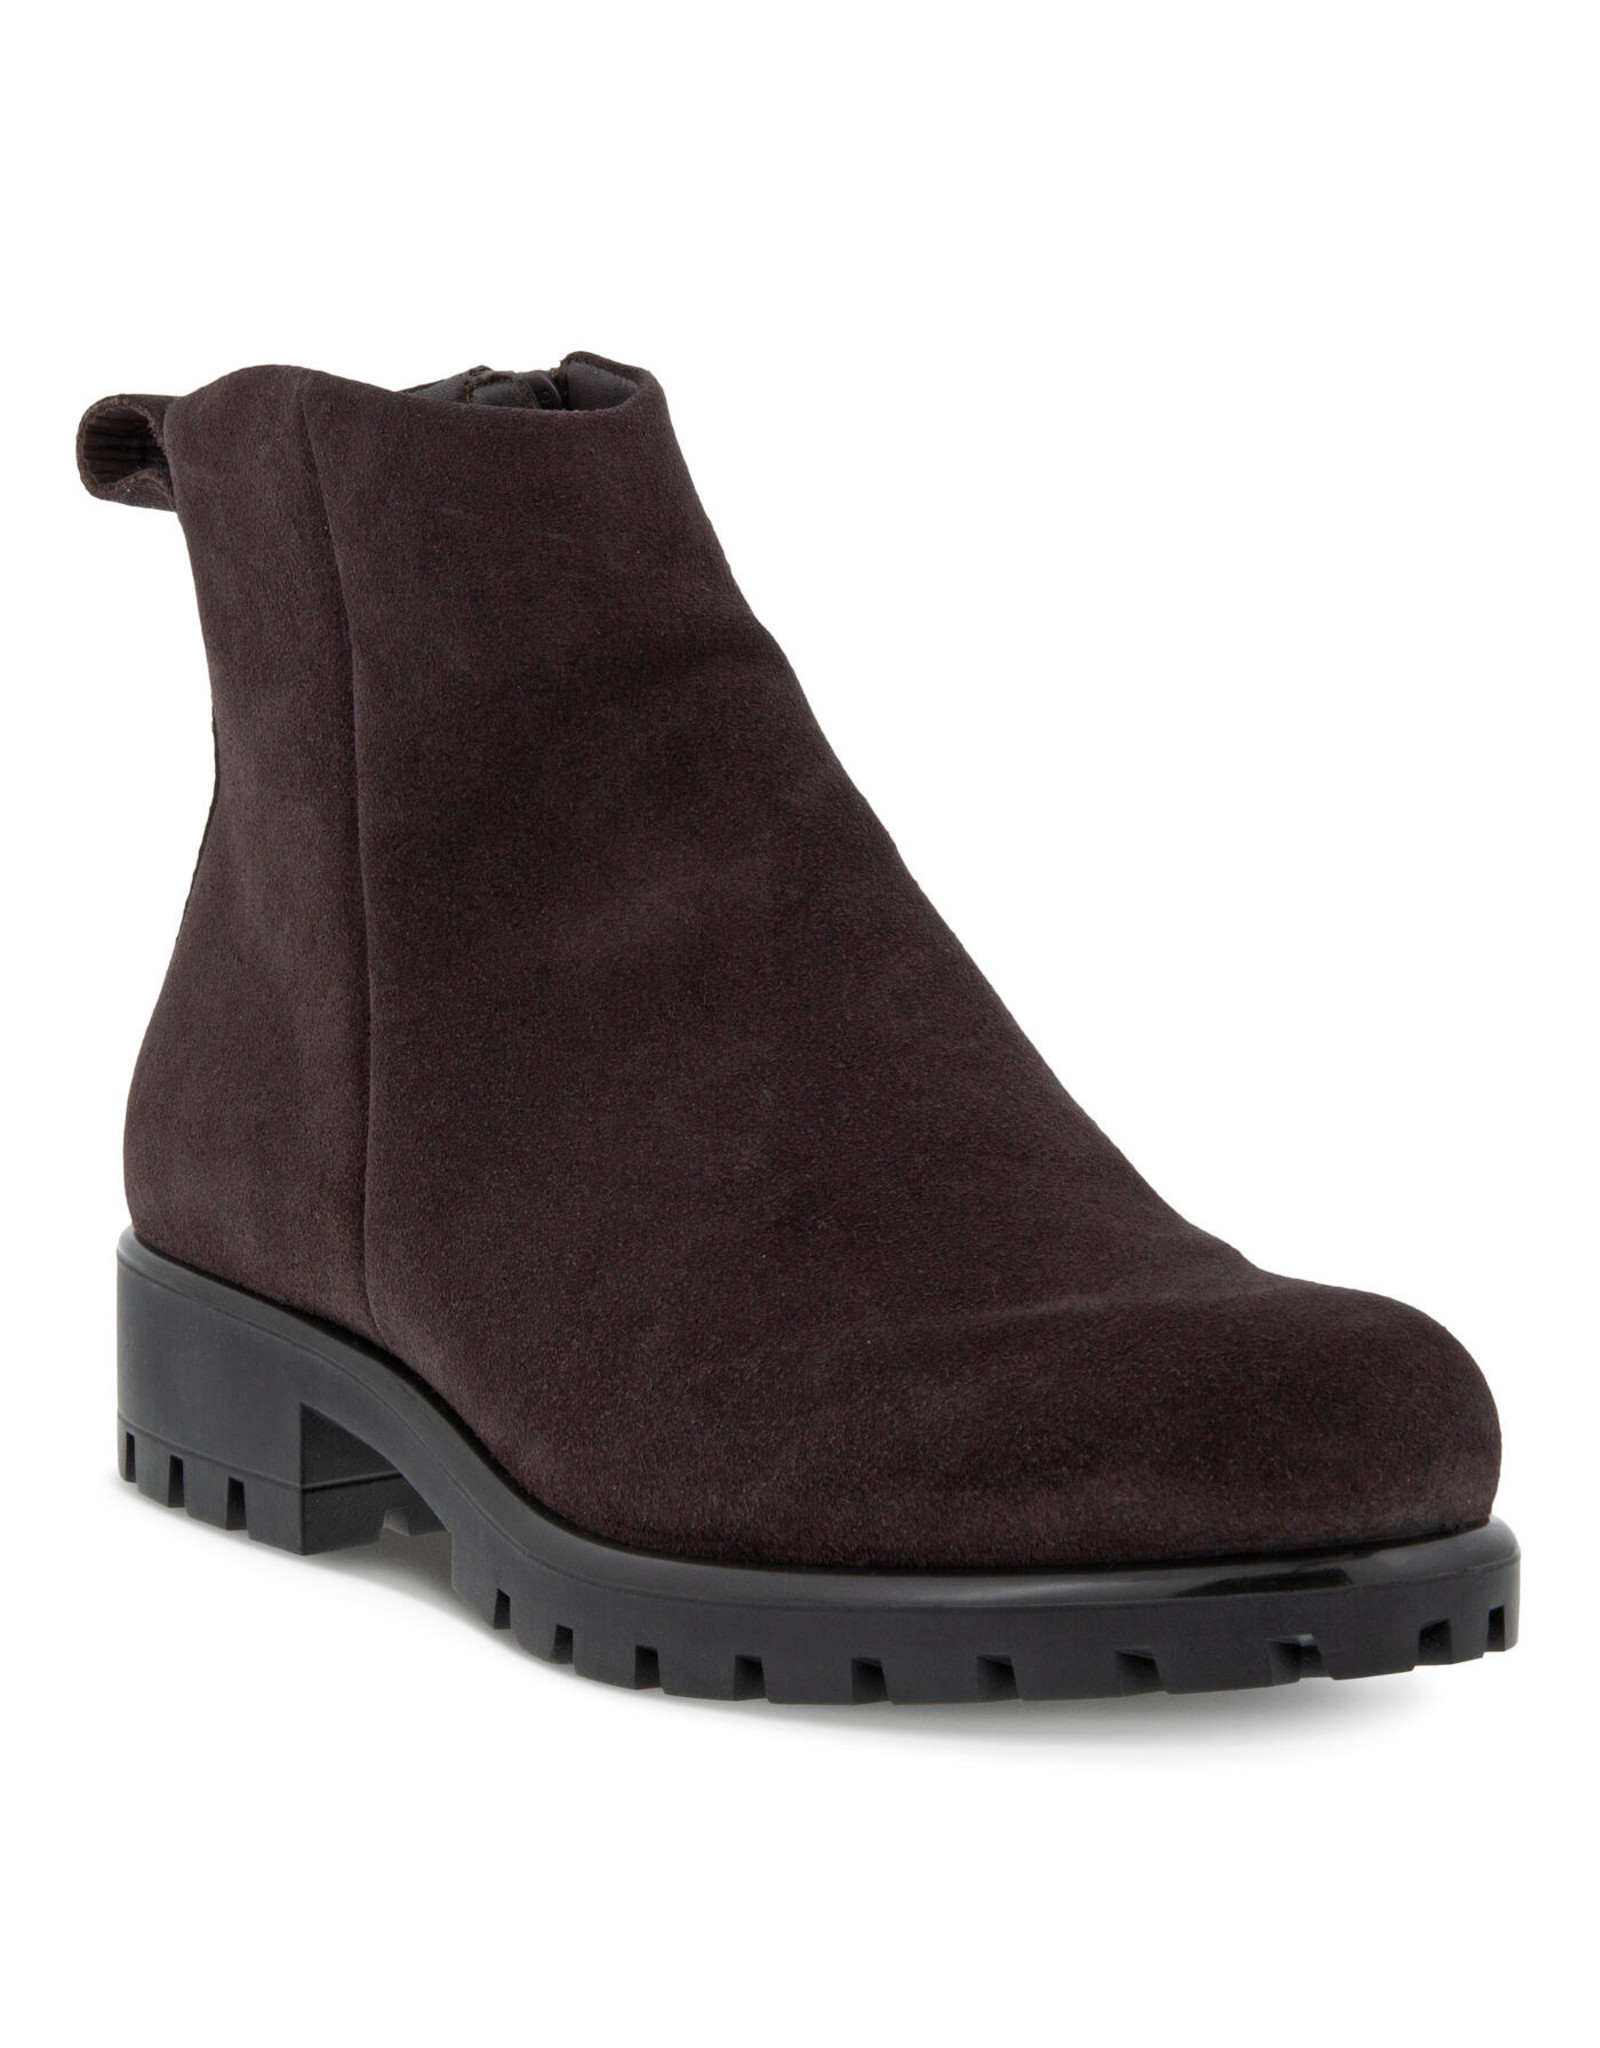 ECCO WOMEN'S MODTRAY ANKLE BOOT-SHALE